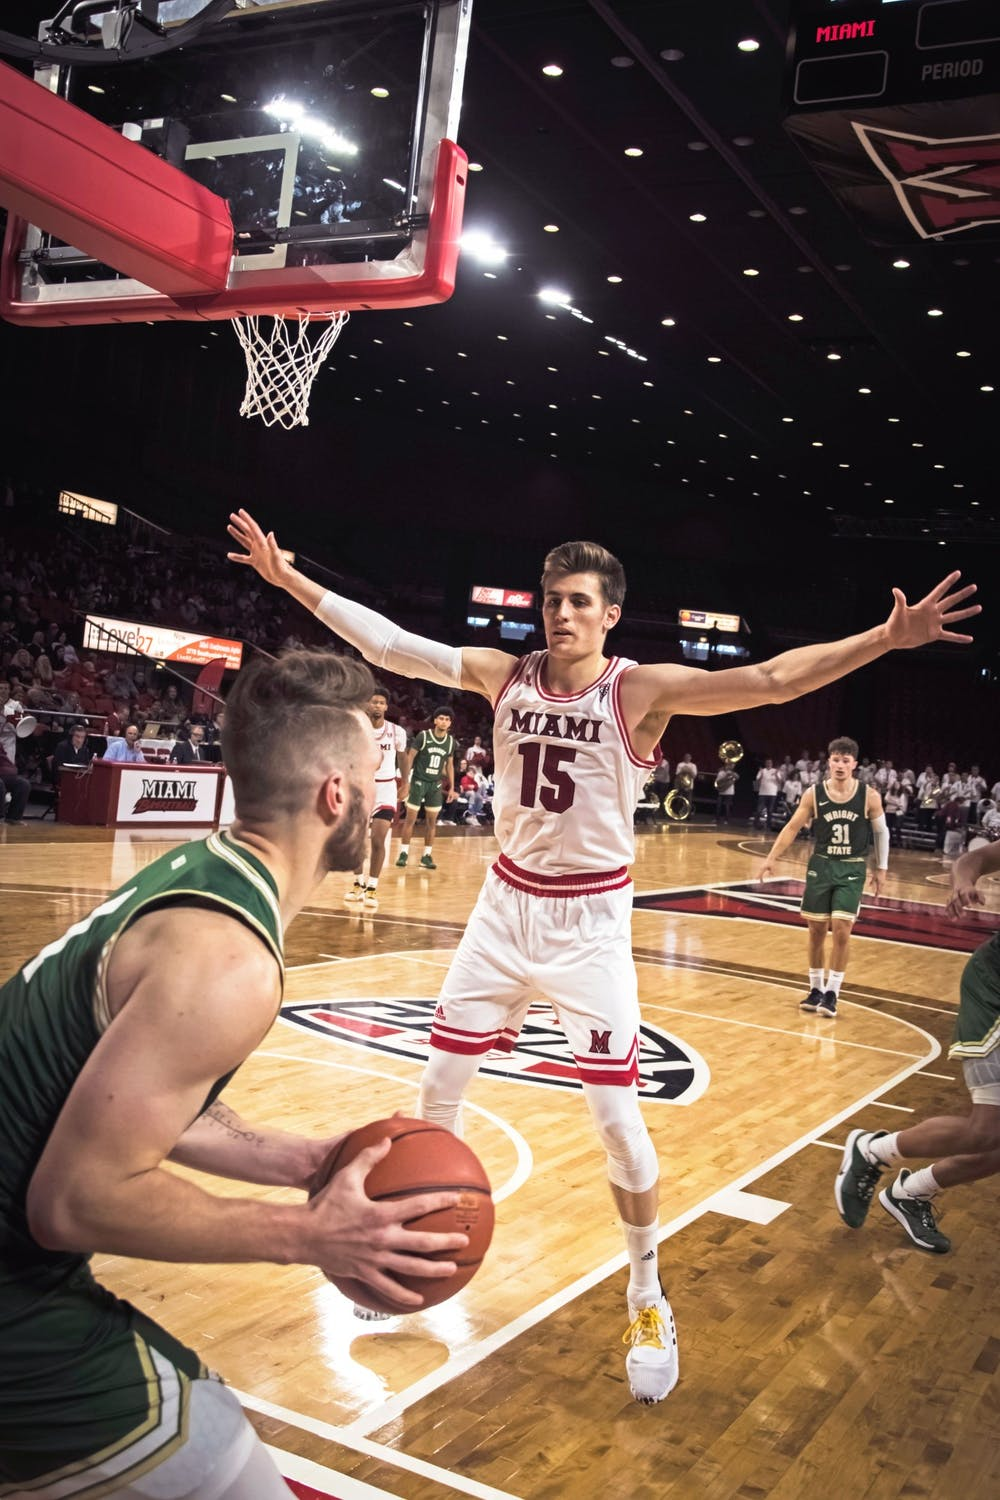 <p>Redshirt junior guard Milos Jovic defends an inbounds play during a season-opening 88-81 loss against Wright State Nov. 9 at Millett Hall.</p><p><br/><br/><br/><br/><br/><br/></p>